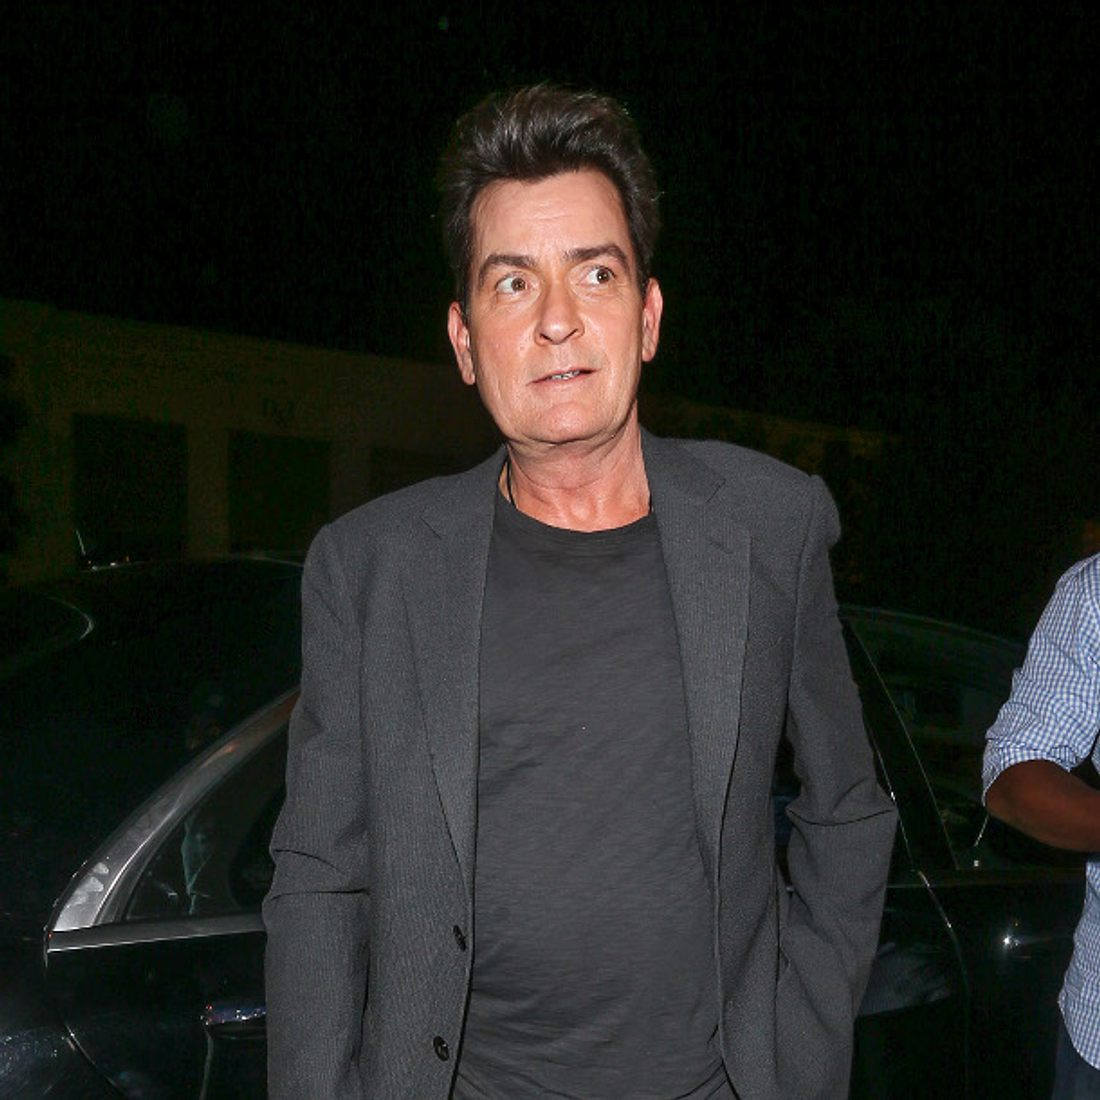 Charlie Sheen dachte an Selbstmord